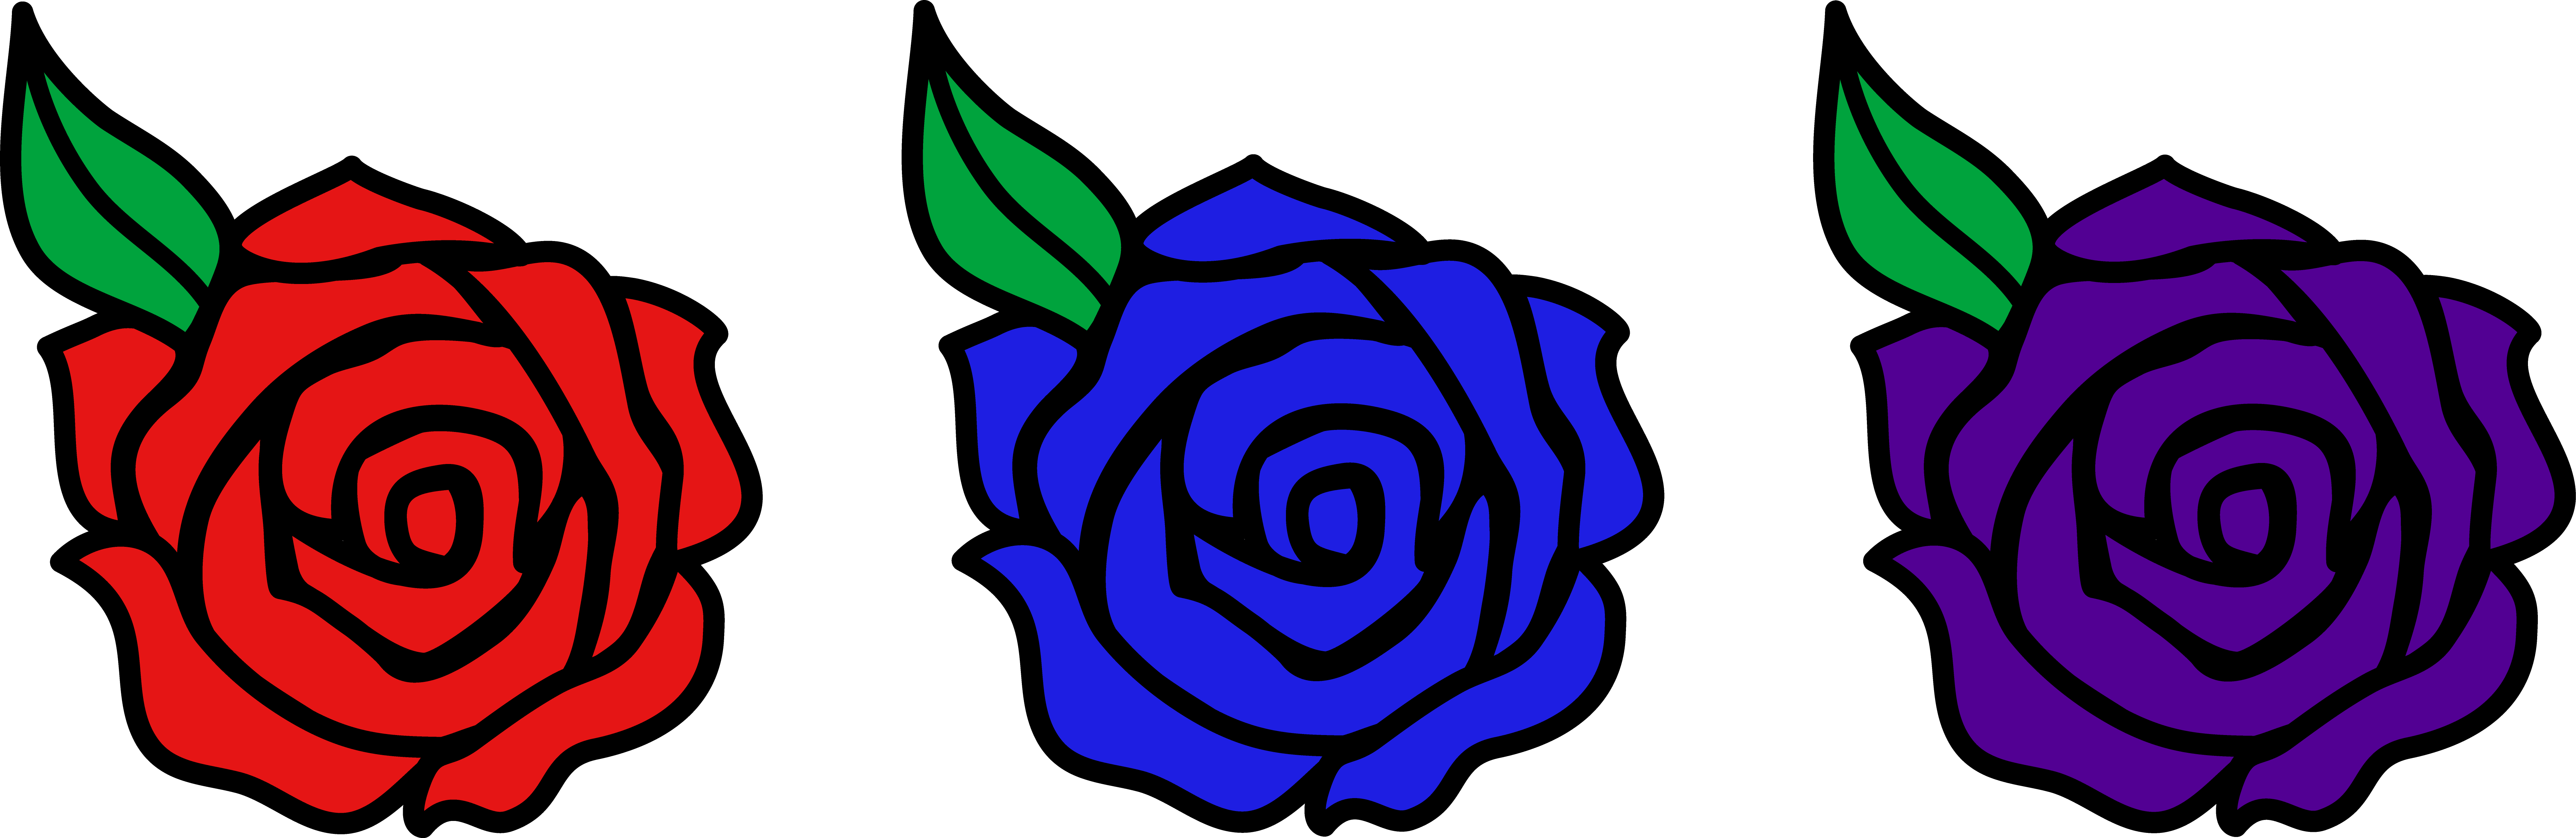 Clipart rose cartoon. Free pictures clipartix download